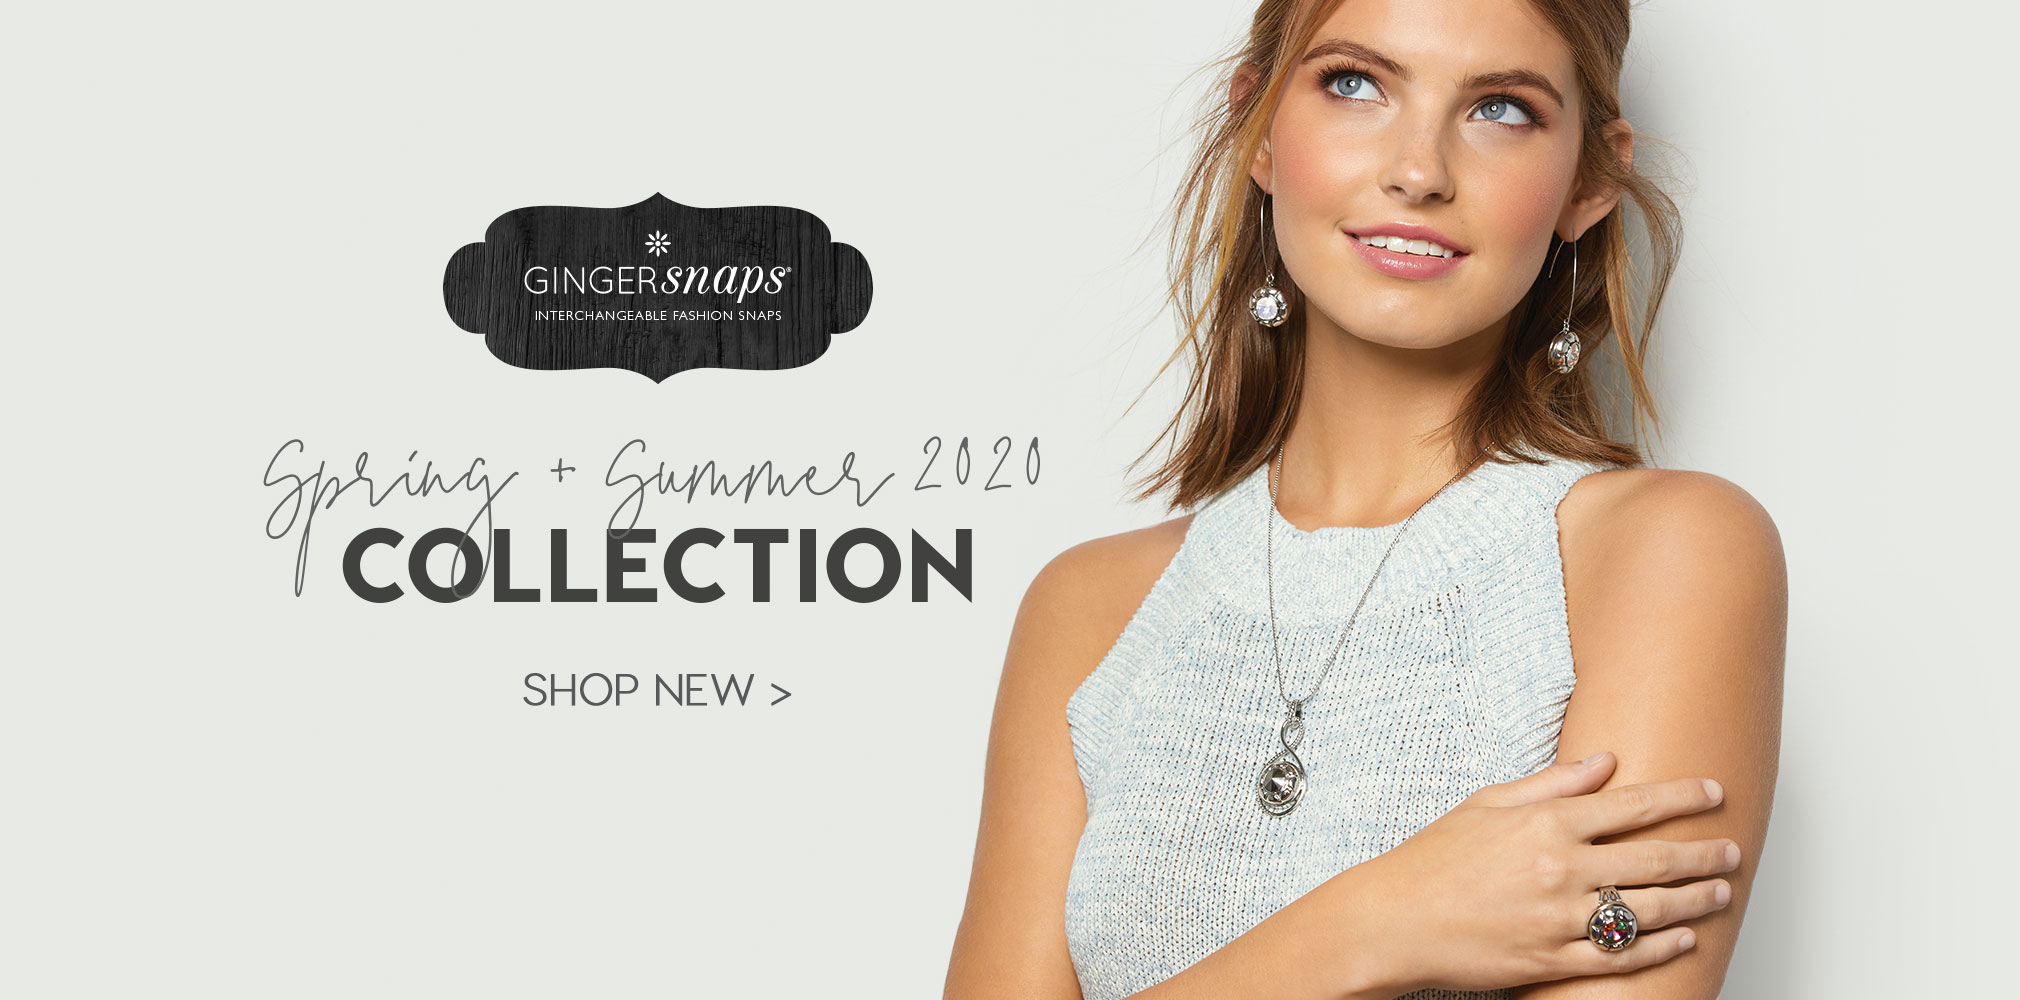 Ginger Snaps New Collection